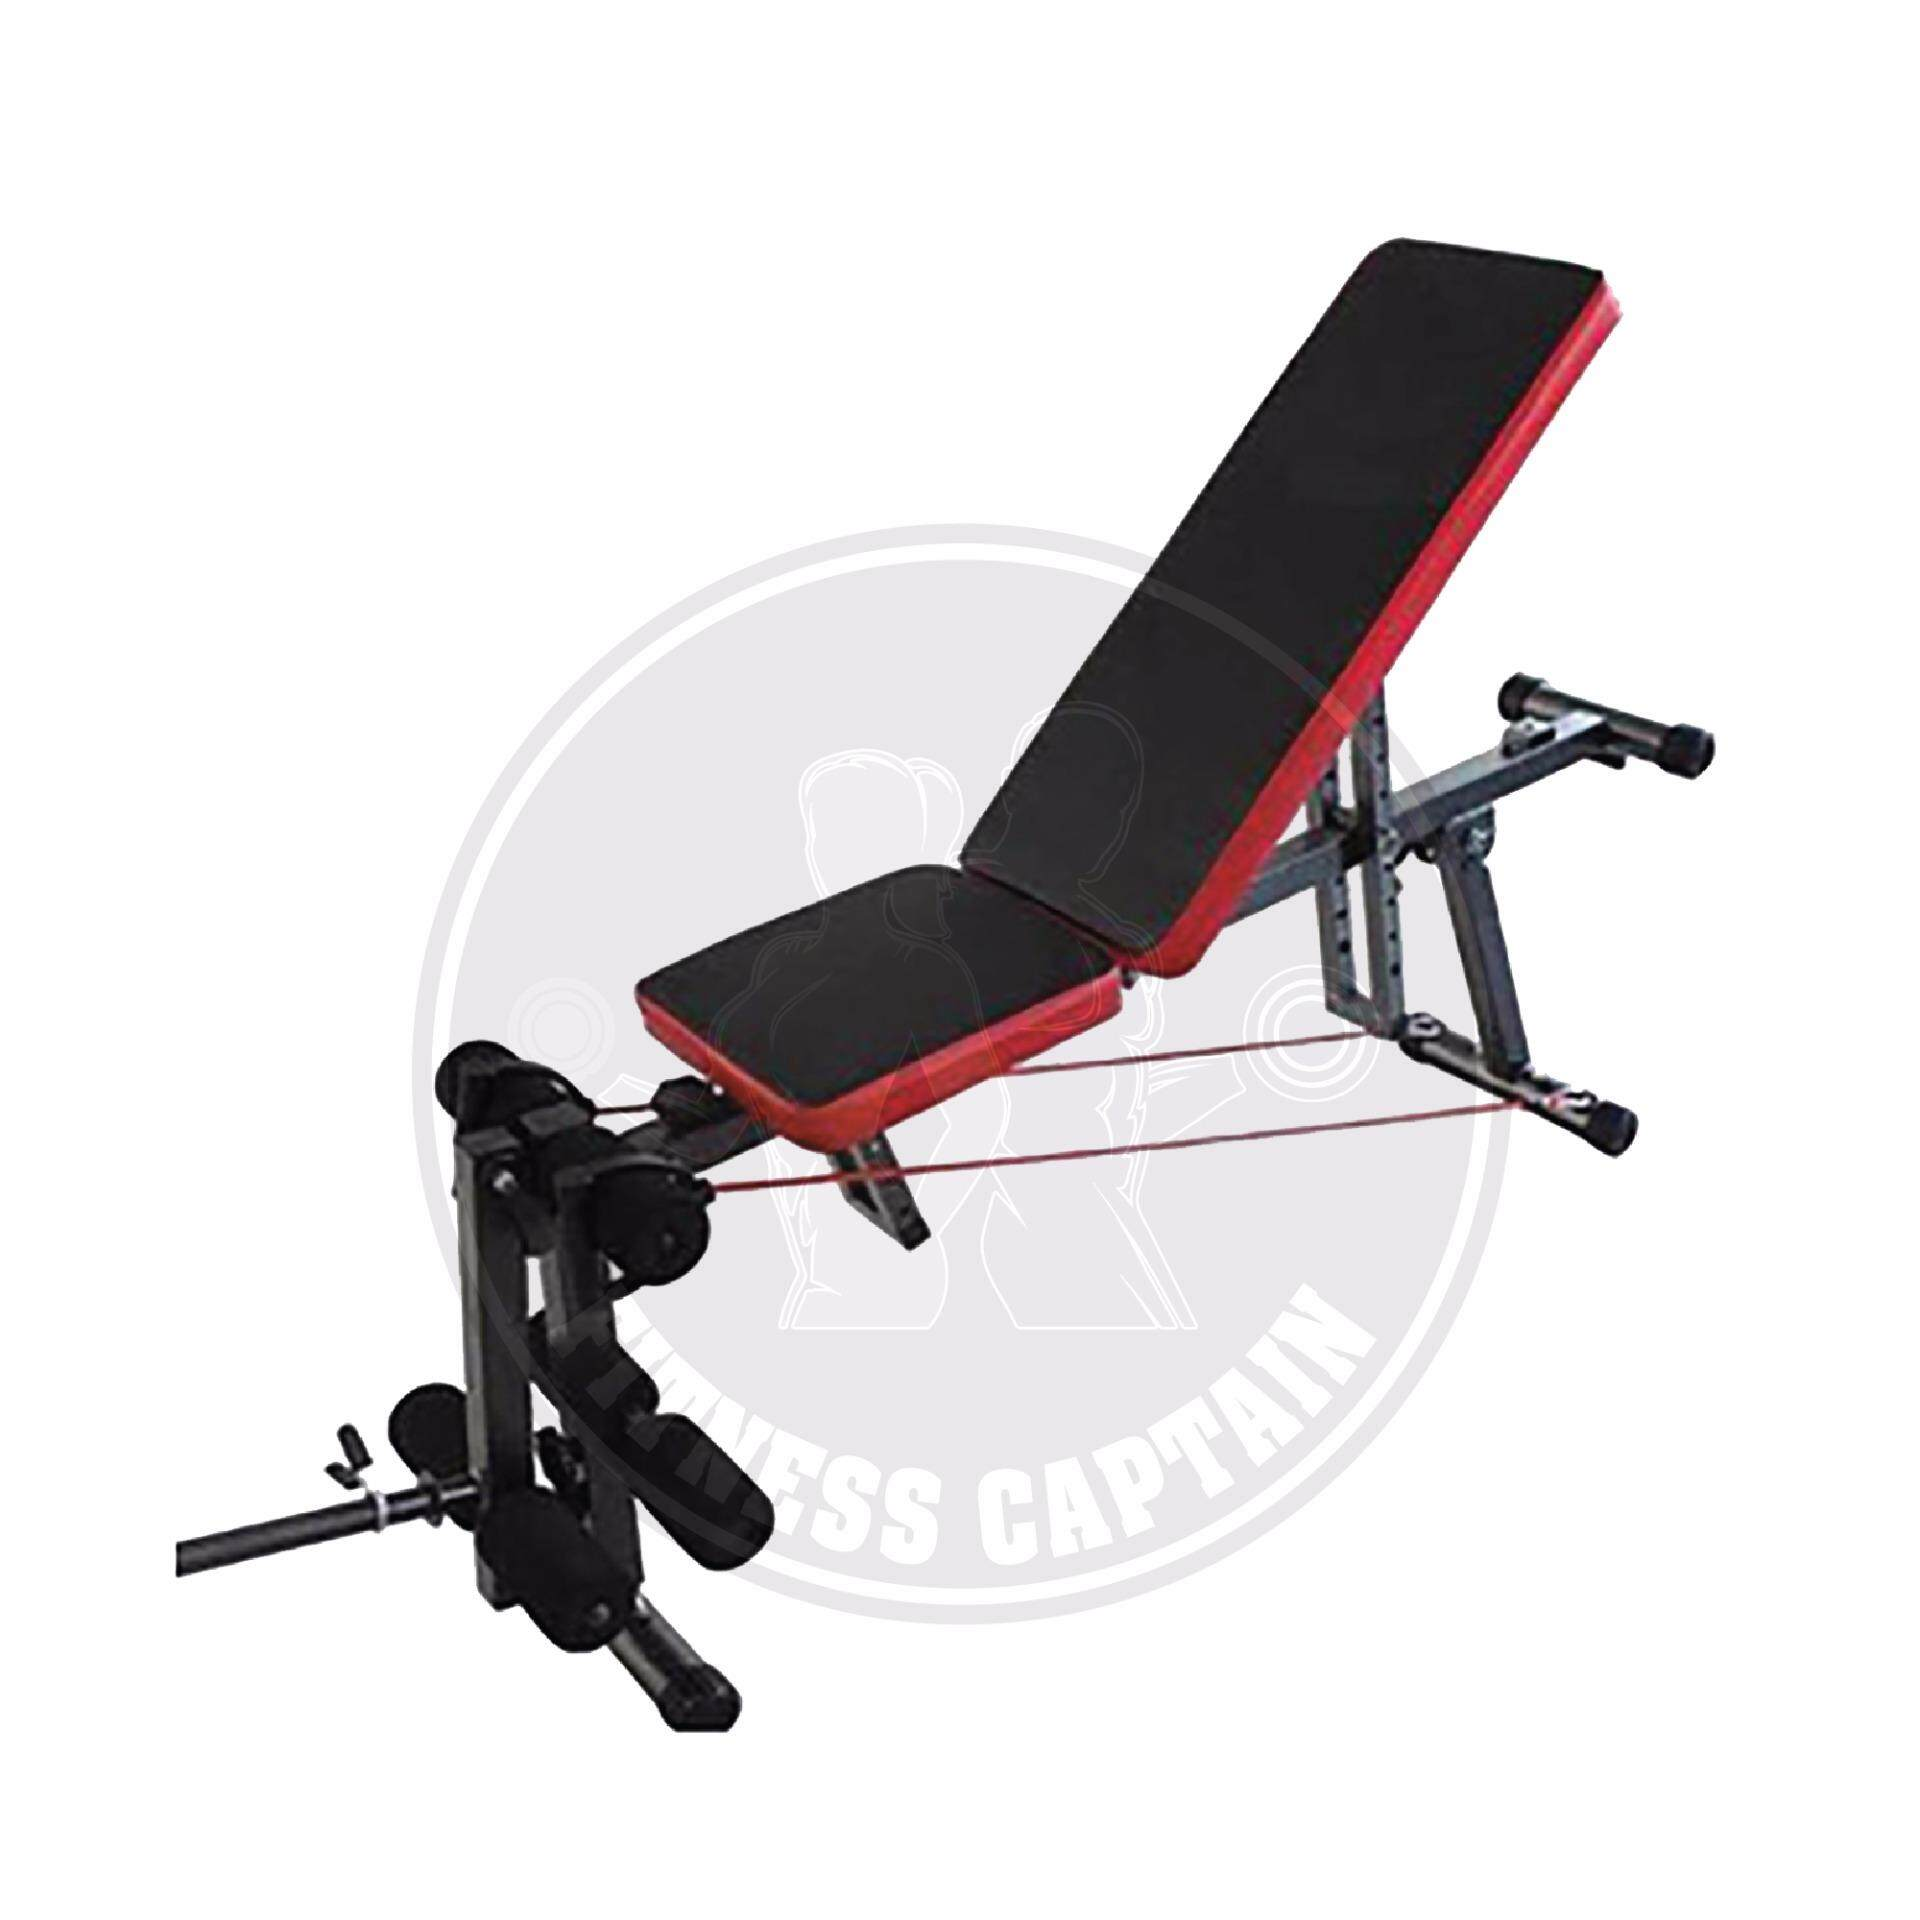 Fitness Captain Gym Adjustable Abs And Dumbbell Workout Bench With Leg  Extension | Lazada Malaysia